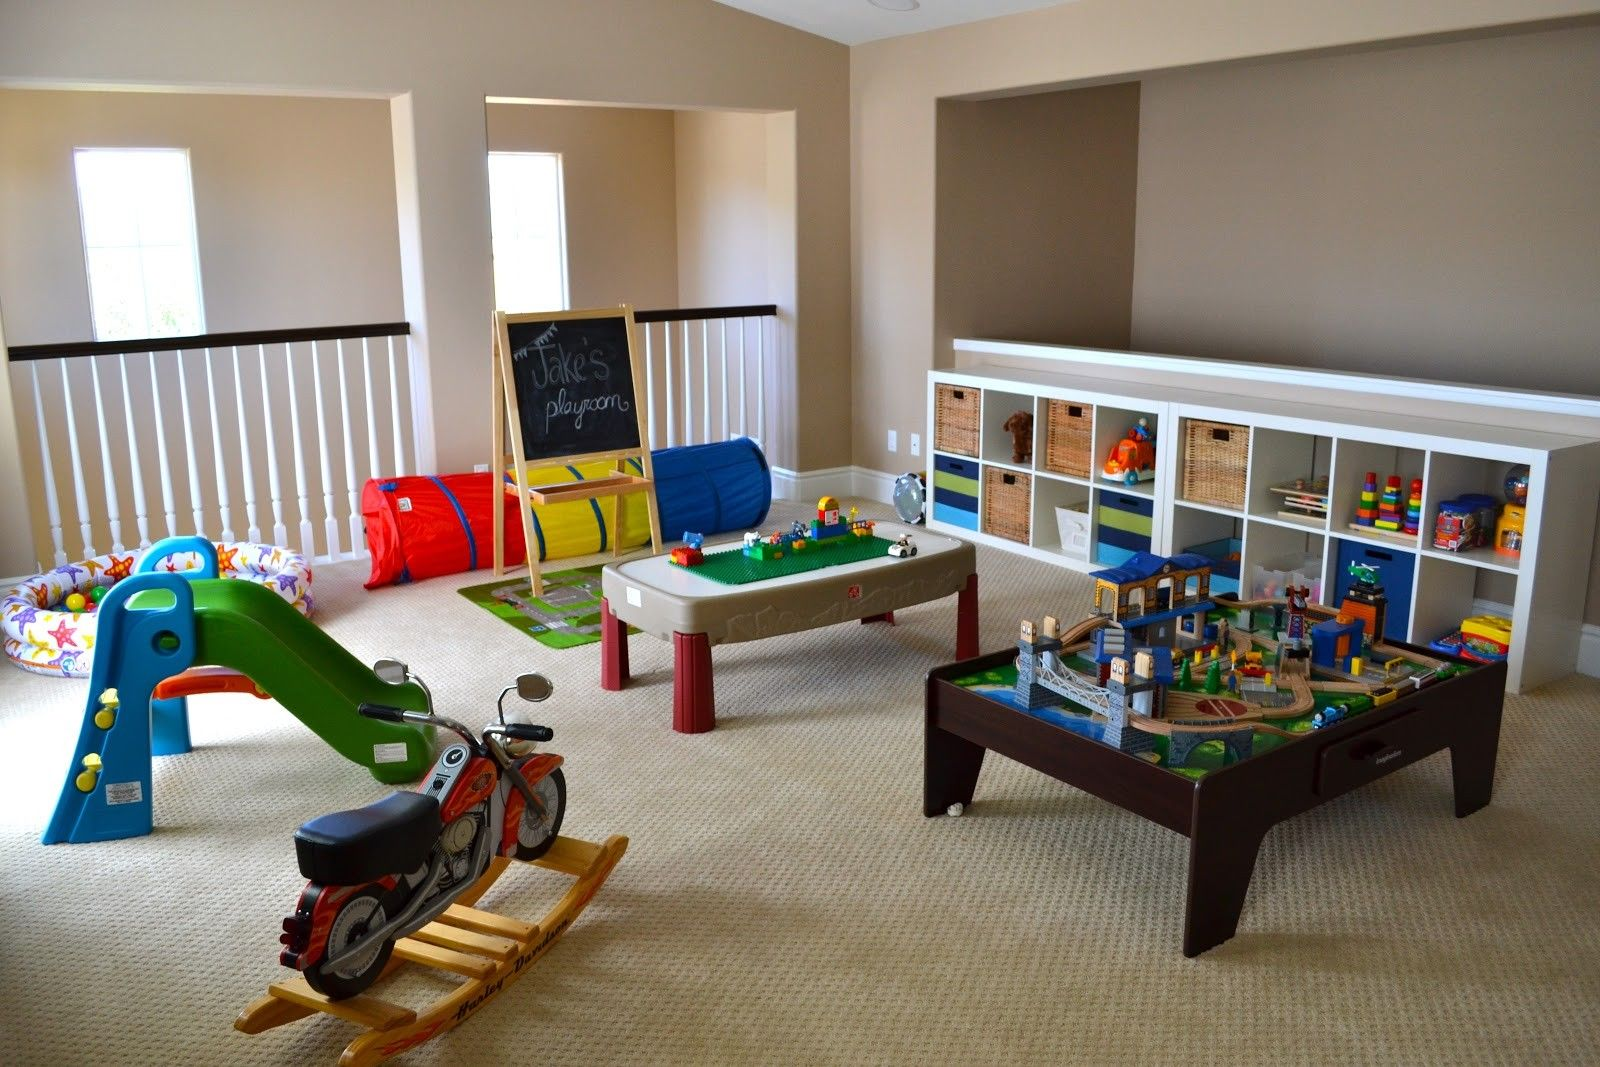 Kids Room Decor Colorful Game Ideas White Shelves Bamboo And Green Blue Stripes